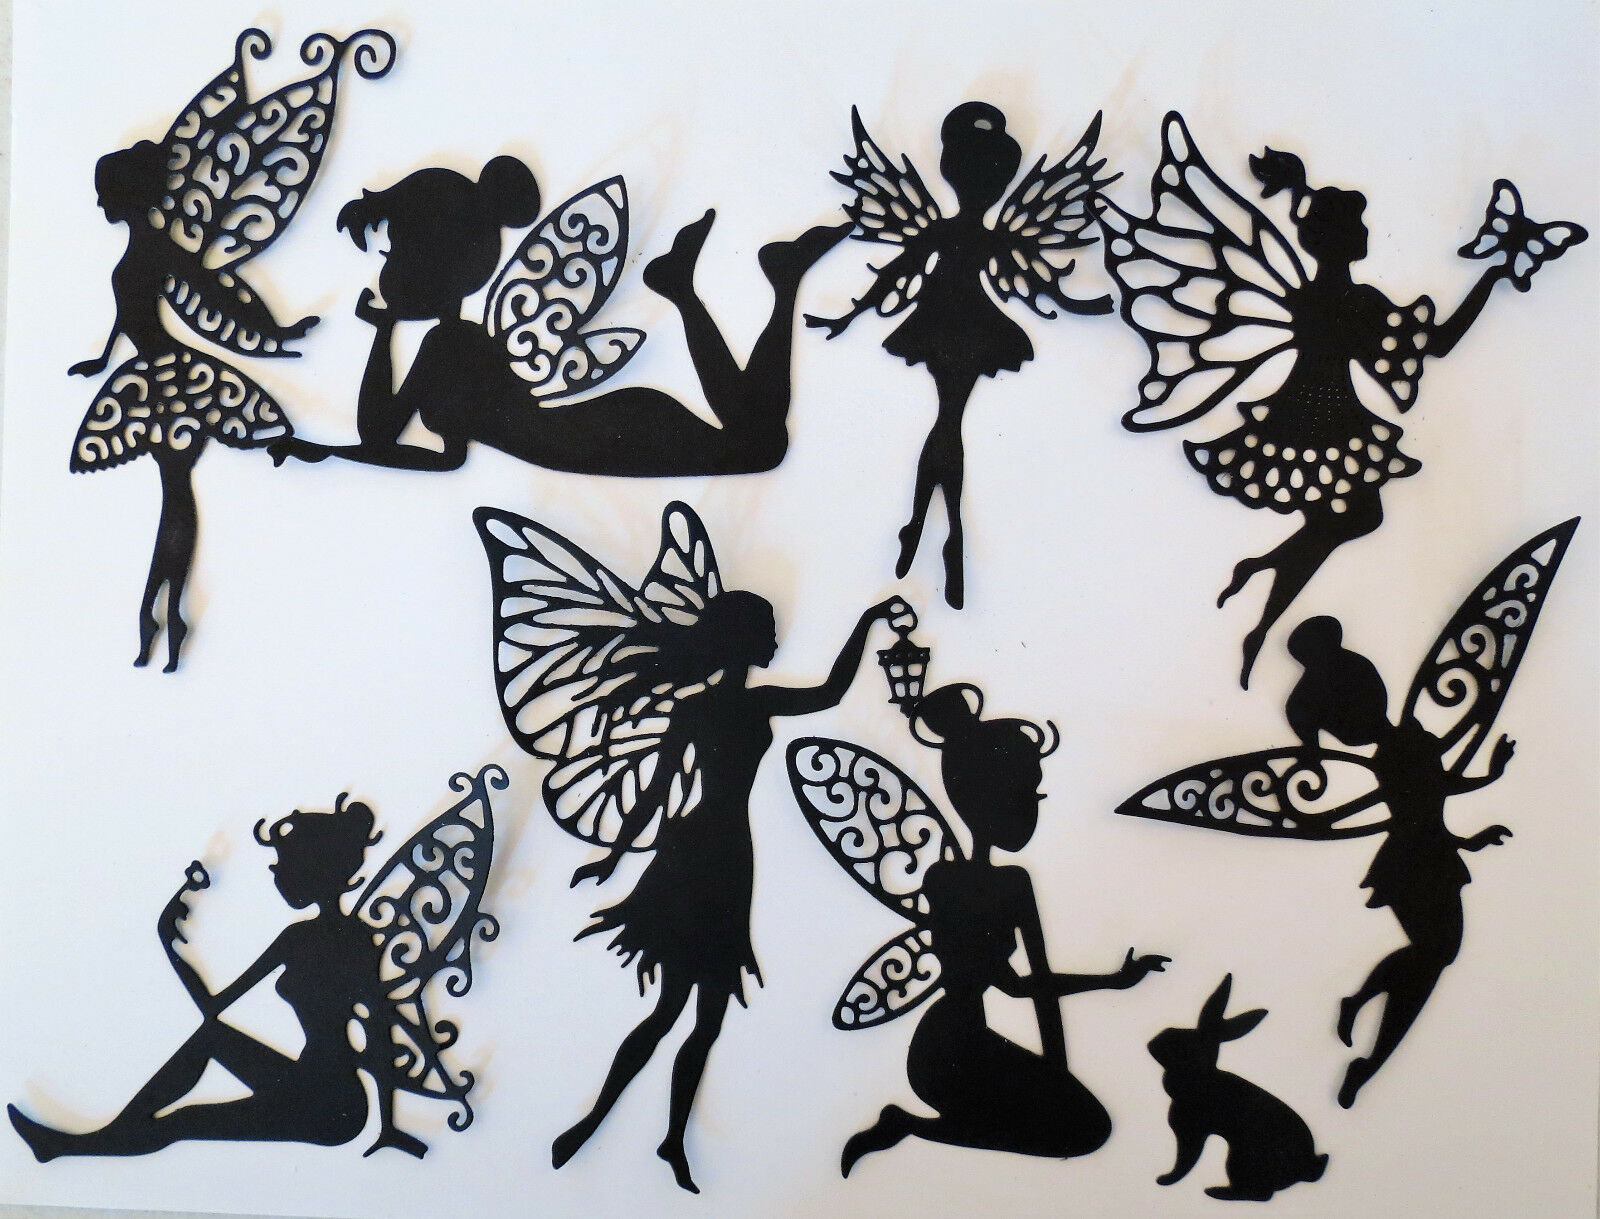 Fairies Fairy Intricate Paper Die Cut Embellishments scrapbooking 8 pc Black